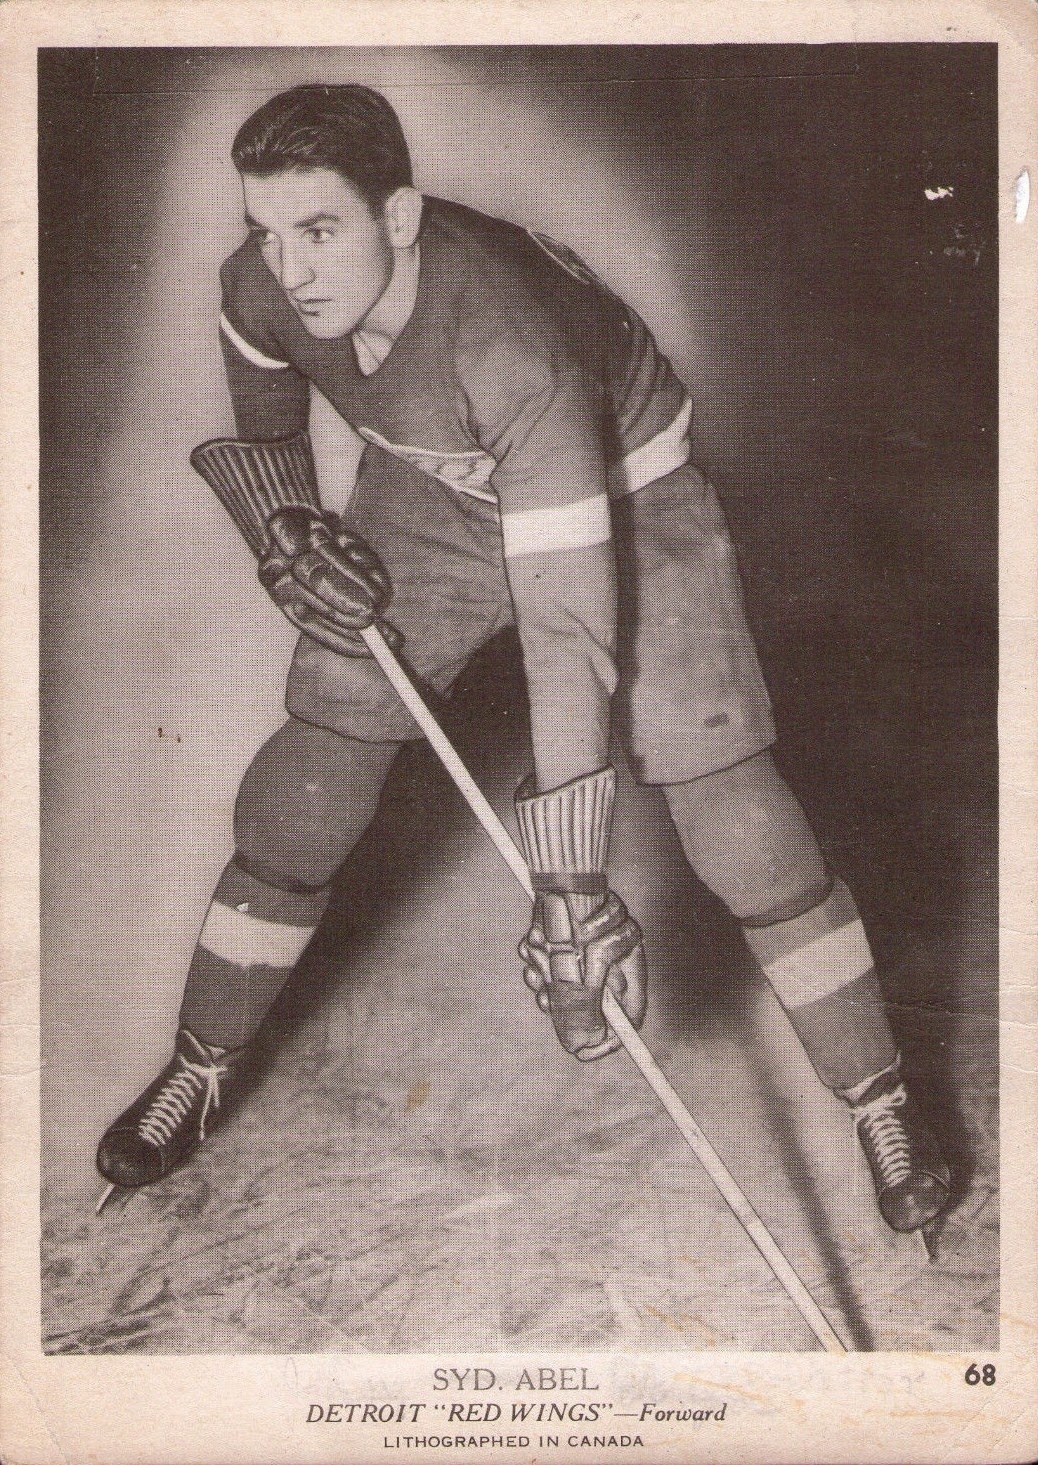 sid abel detroit red wings 1939-40 o-pee-chee